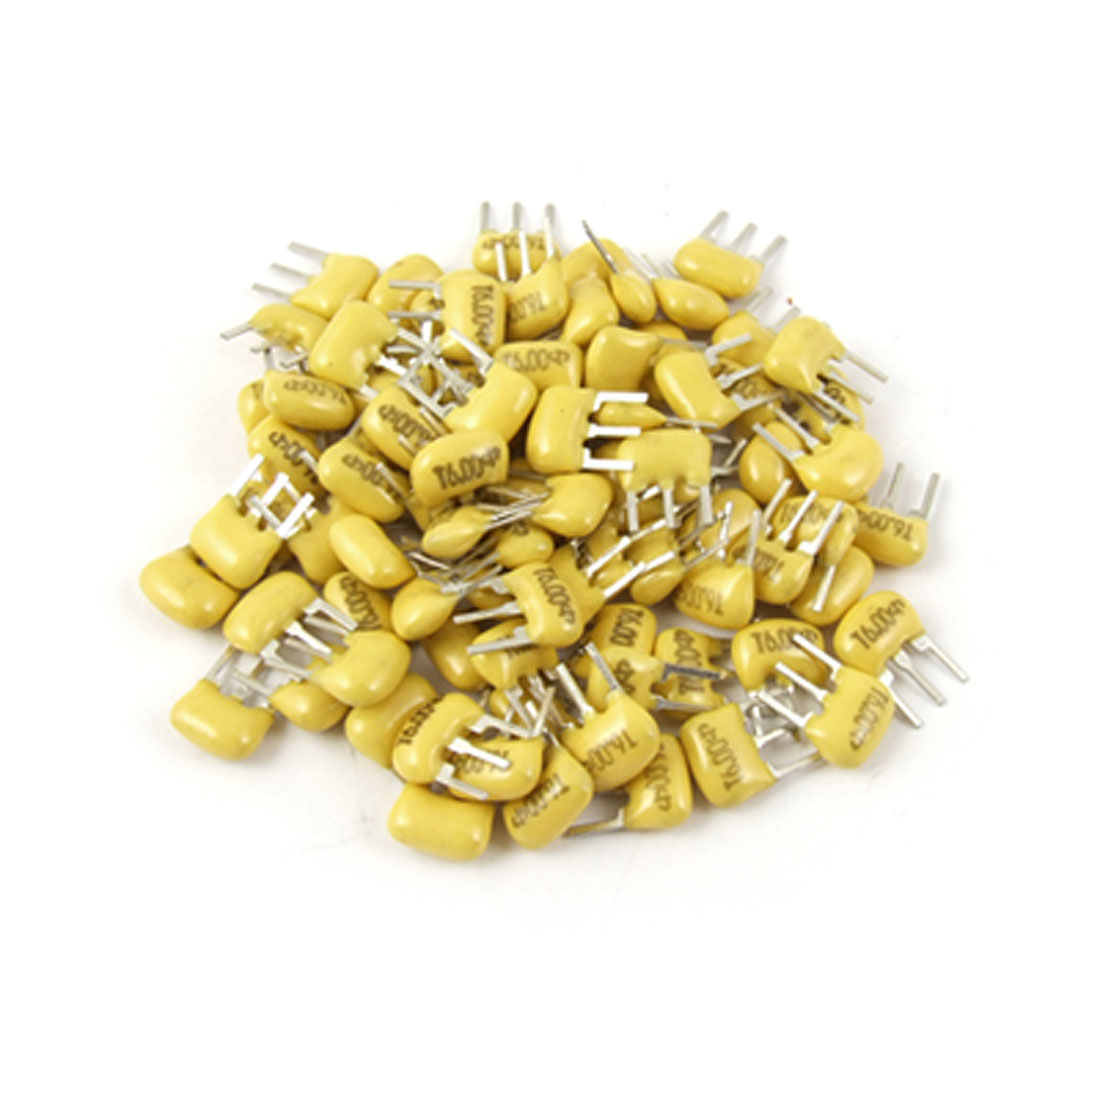 100-Pcs-6-MHz-3-Pins-Ceramic-Filters-for-Radio-Receiver